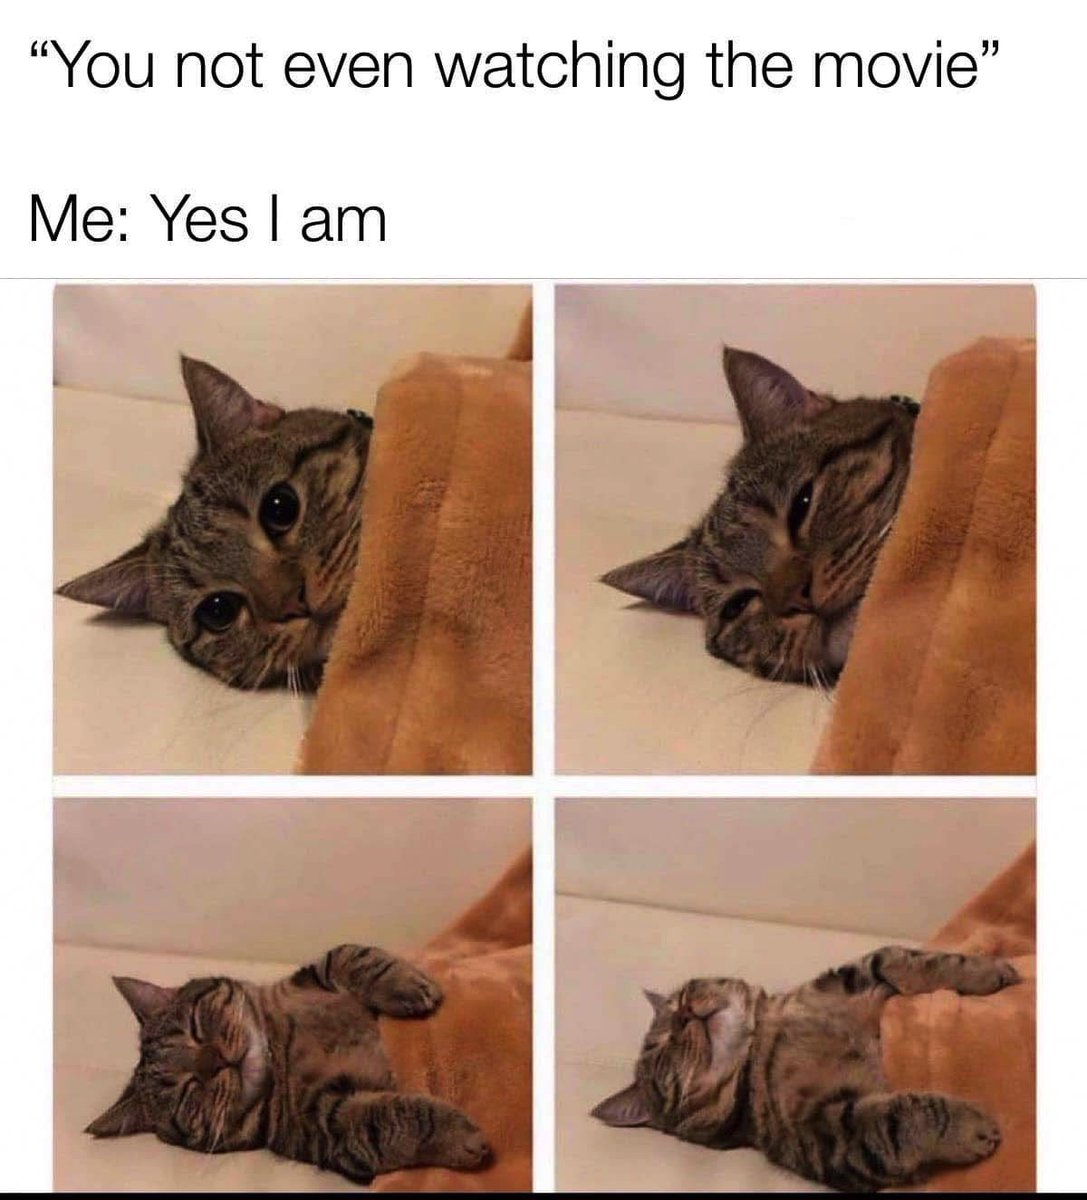 Us when watching #movies! 😹 #cat #catmemes #memes #memesdaily #movie